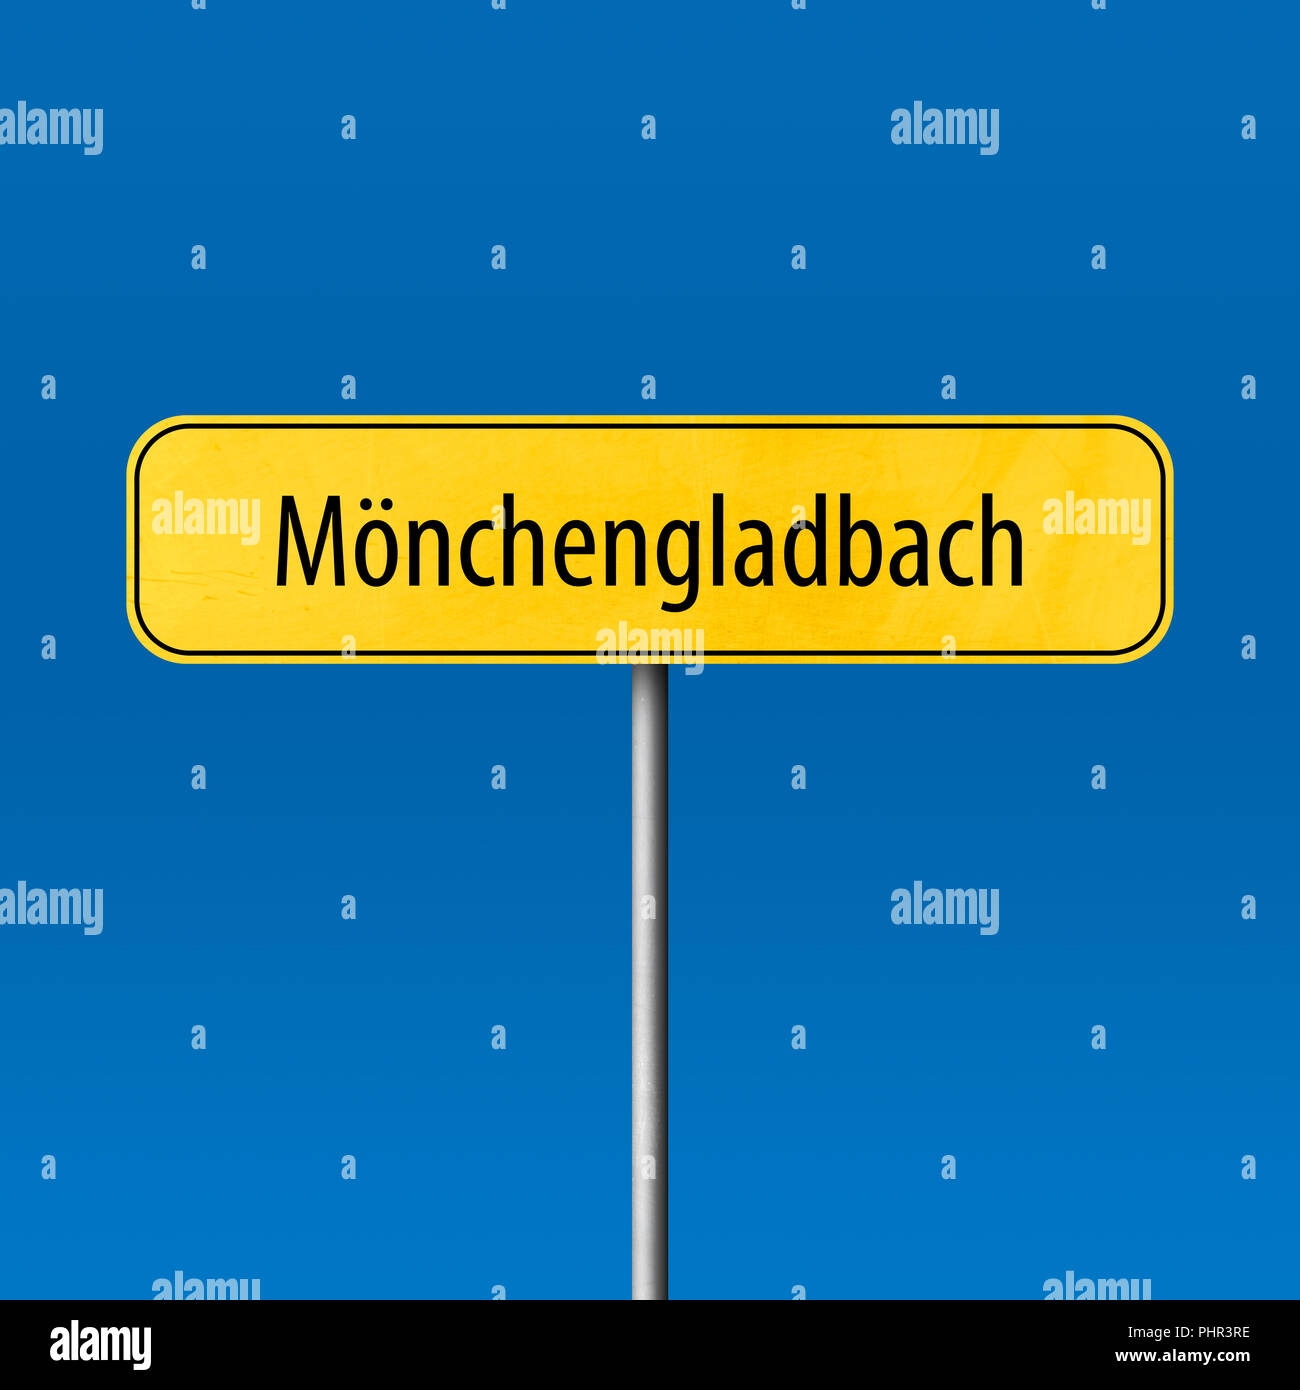 Mönchengladbach - town sign, place name sign - Stock Image